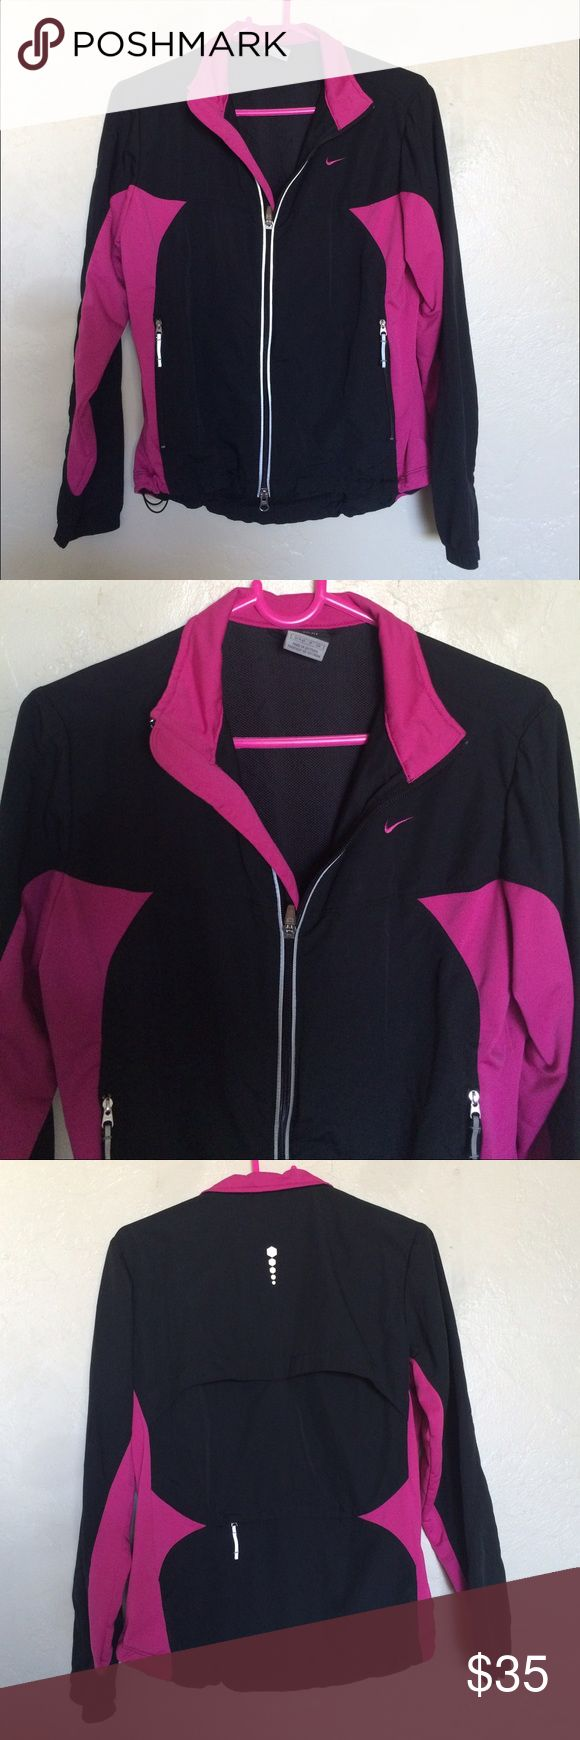 Nike Running jacket Black and pink. Has a lot of pockets. Excellent condition Nike Jackets & Coats